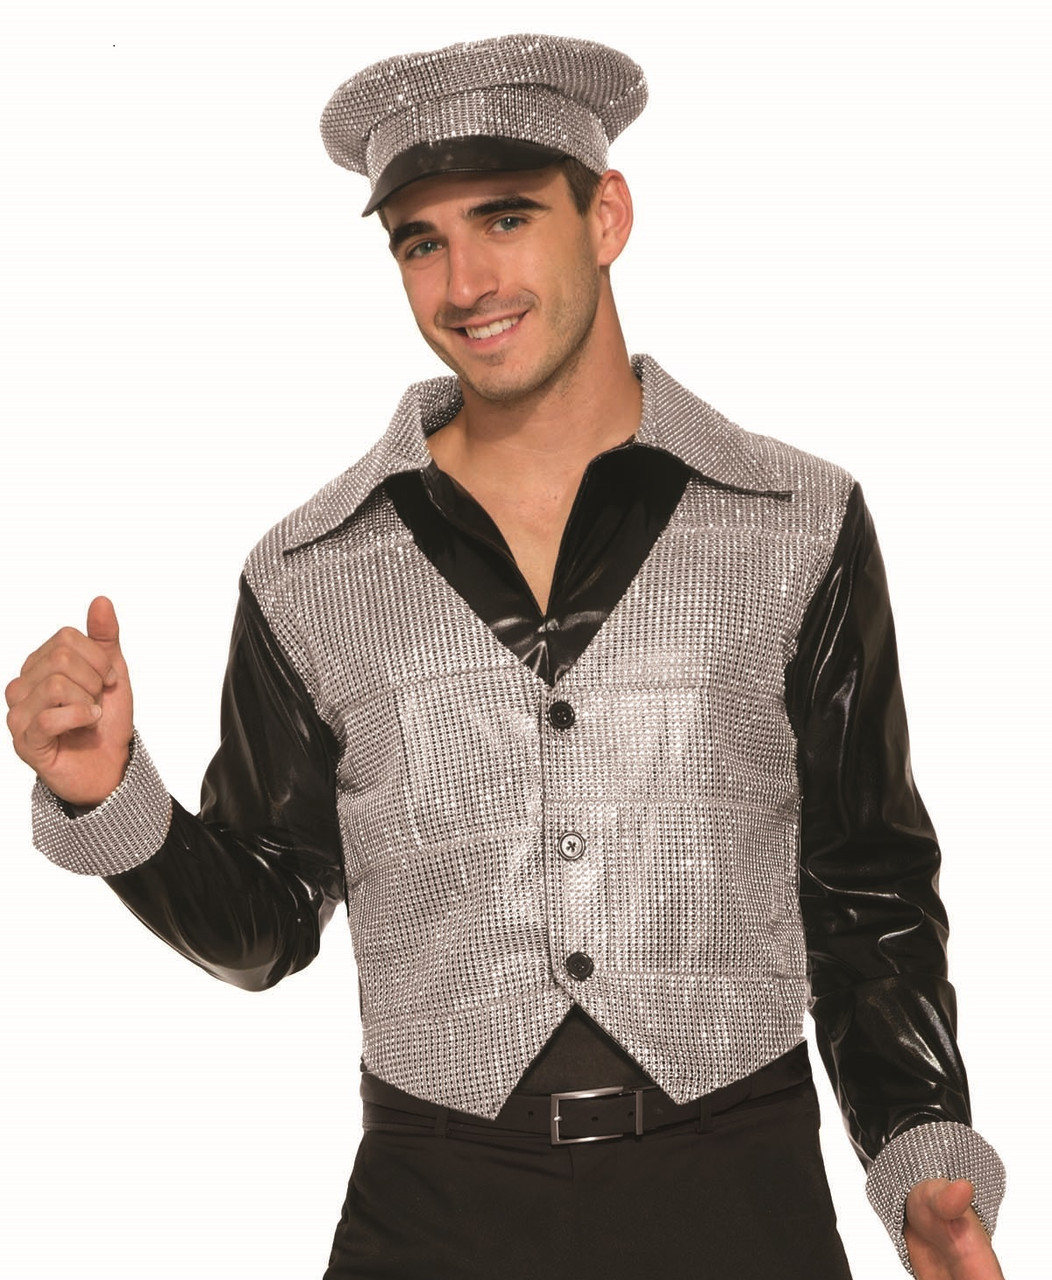 88cf49a5917d6 70s Disco Hat Retro Police Officer Silver Rhinestone Style Costume  Accessory - www.dazzlingcostumes.com